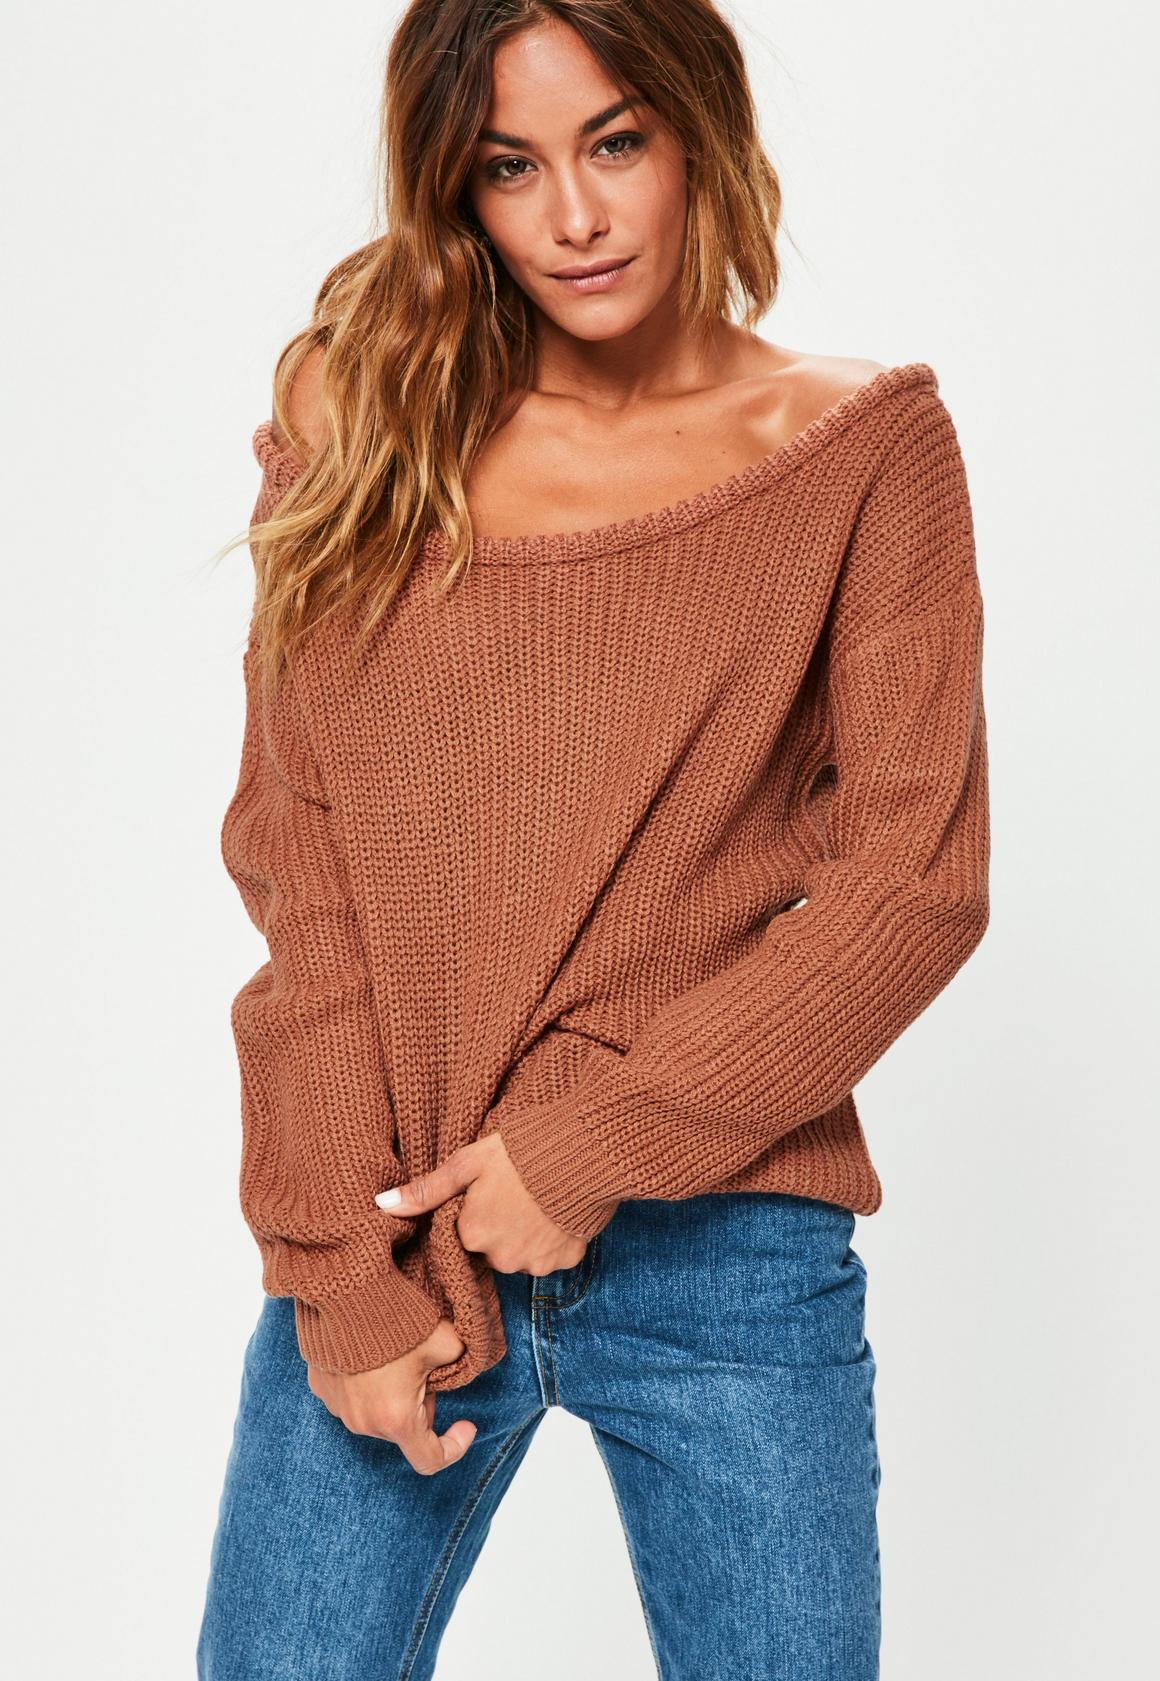 Tan Off Shoulder Knitted Jumper Tan Off Shoulder Knitted Jumper - Off Shoulder Jumpers One Shoulder Sweaters - Missguided